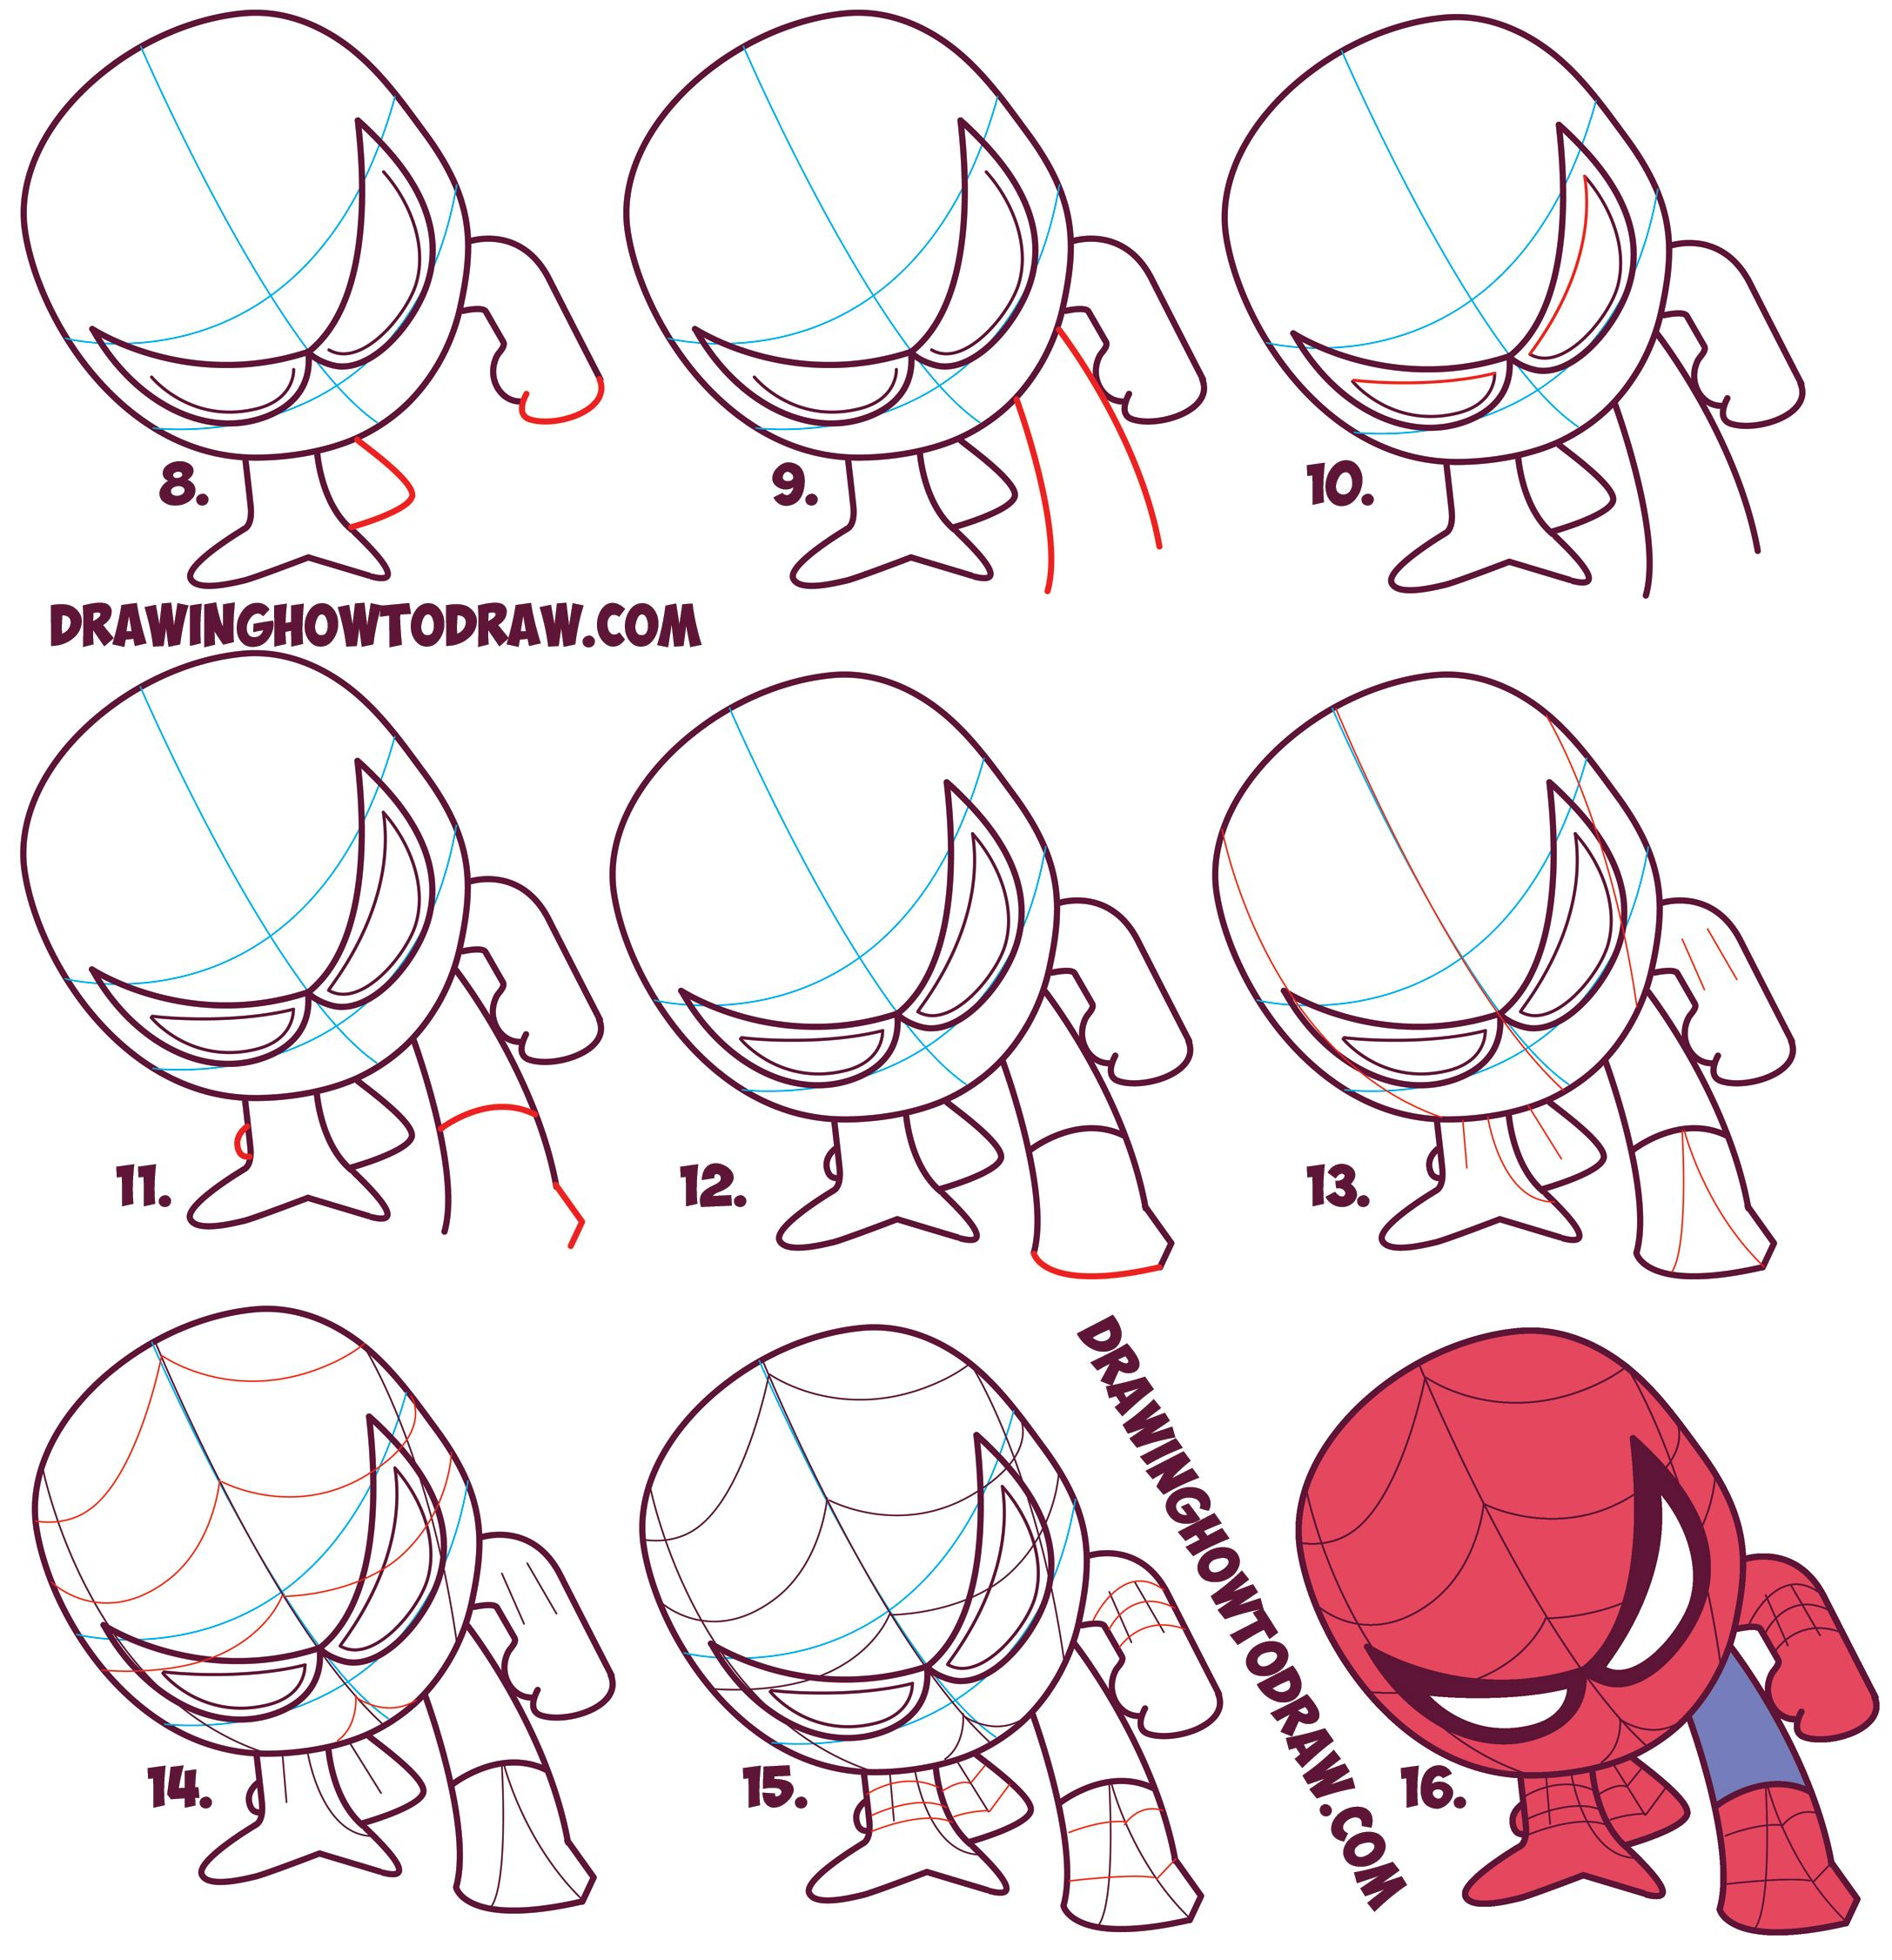 How To Draw Cute Spiderman Chibi Kawaii Easy Step By Step